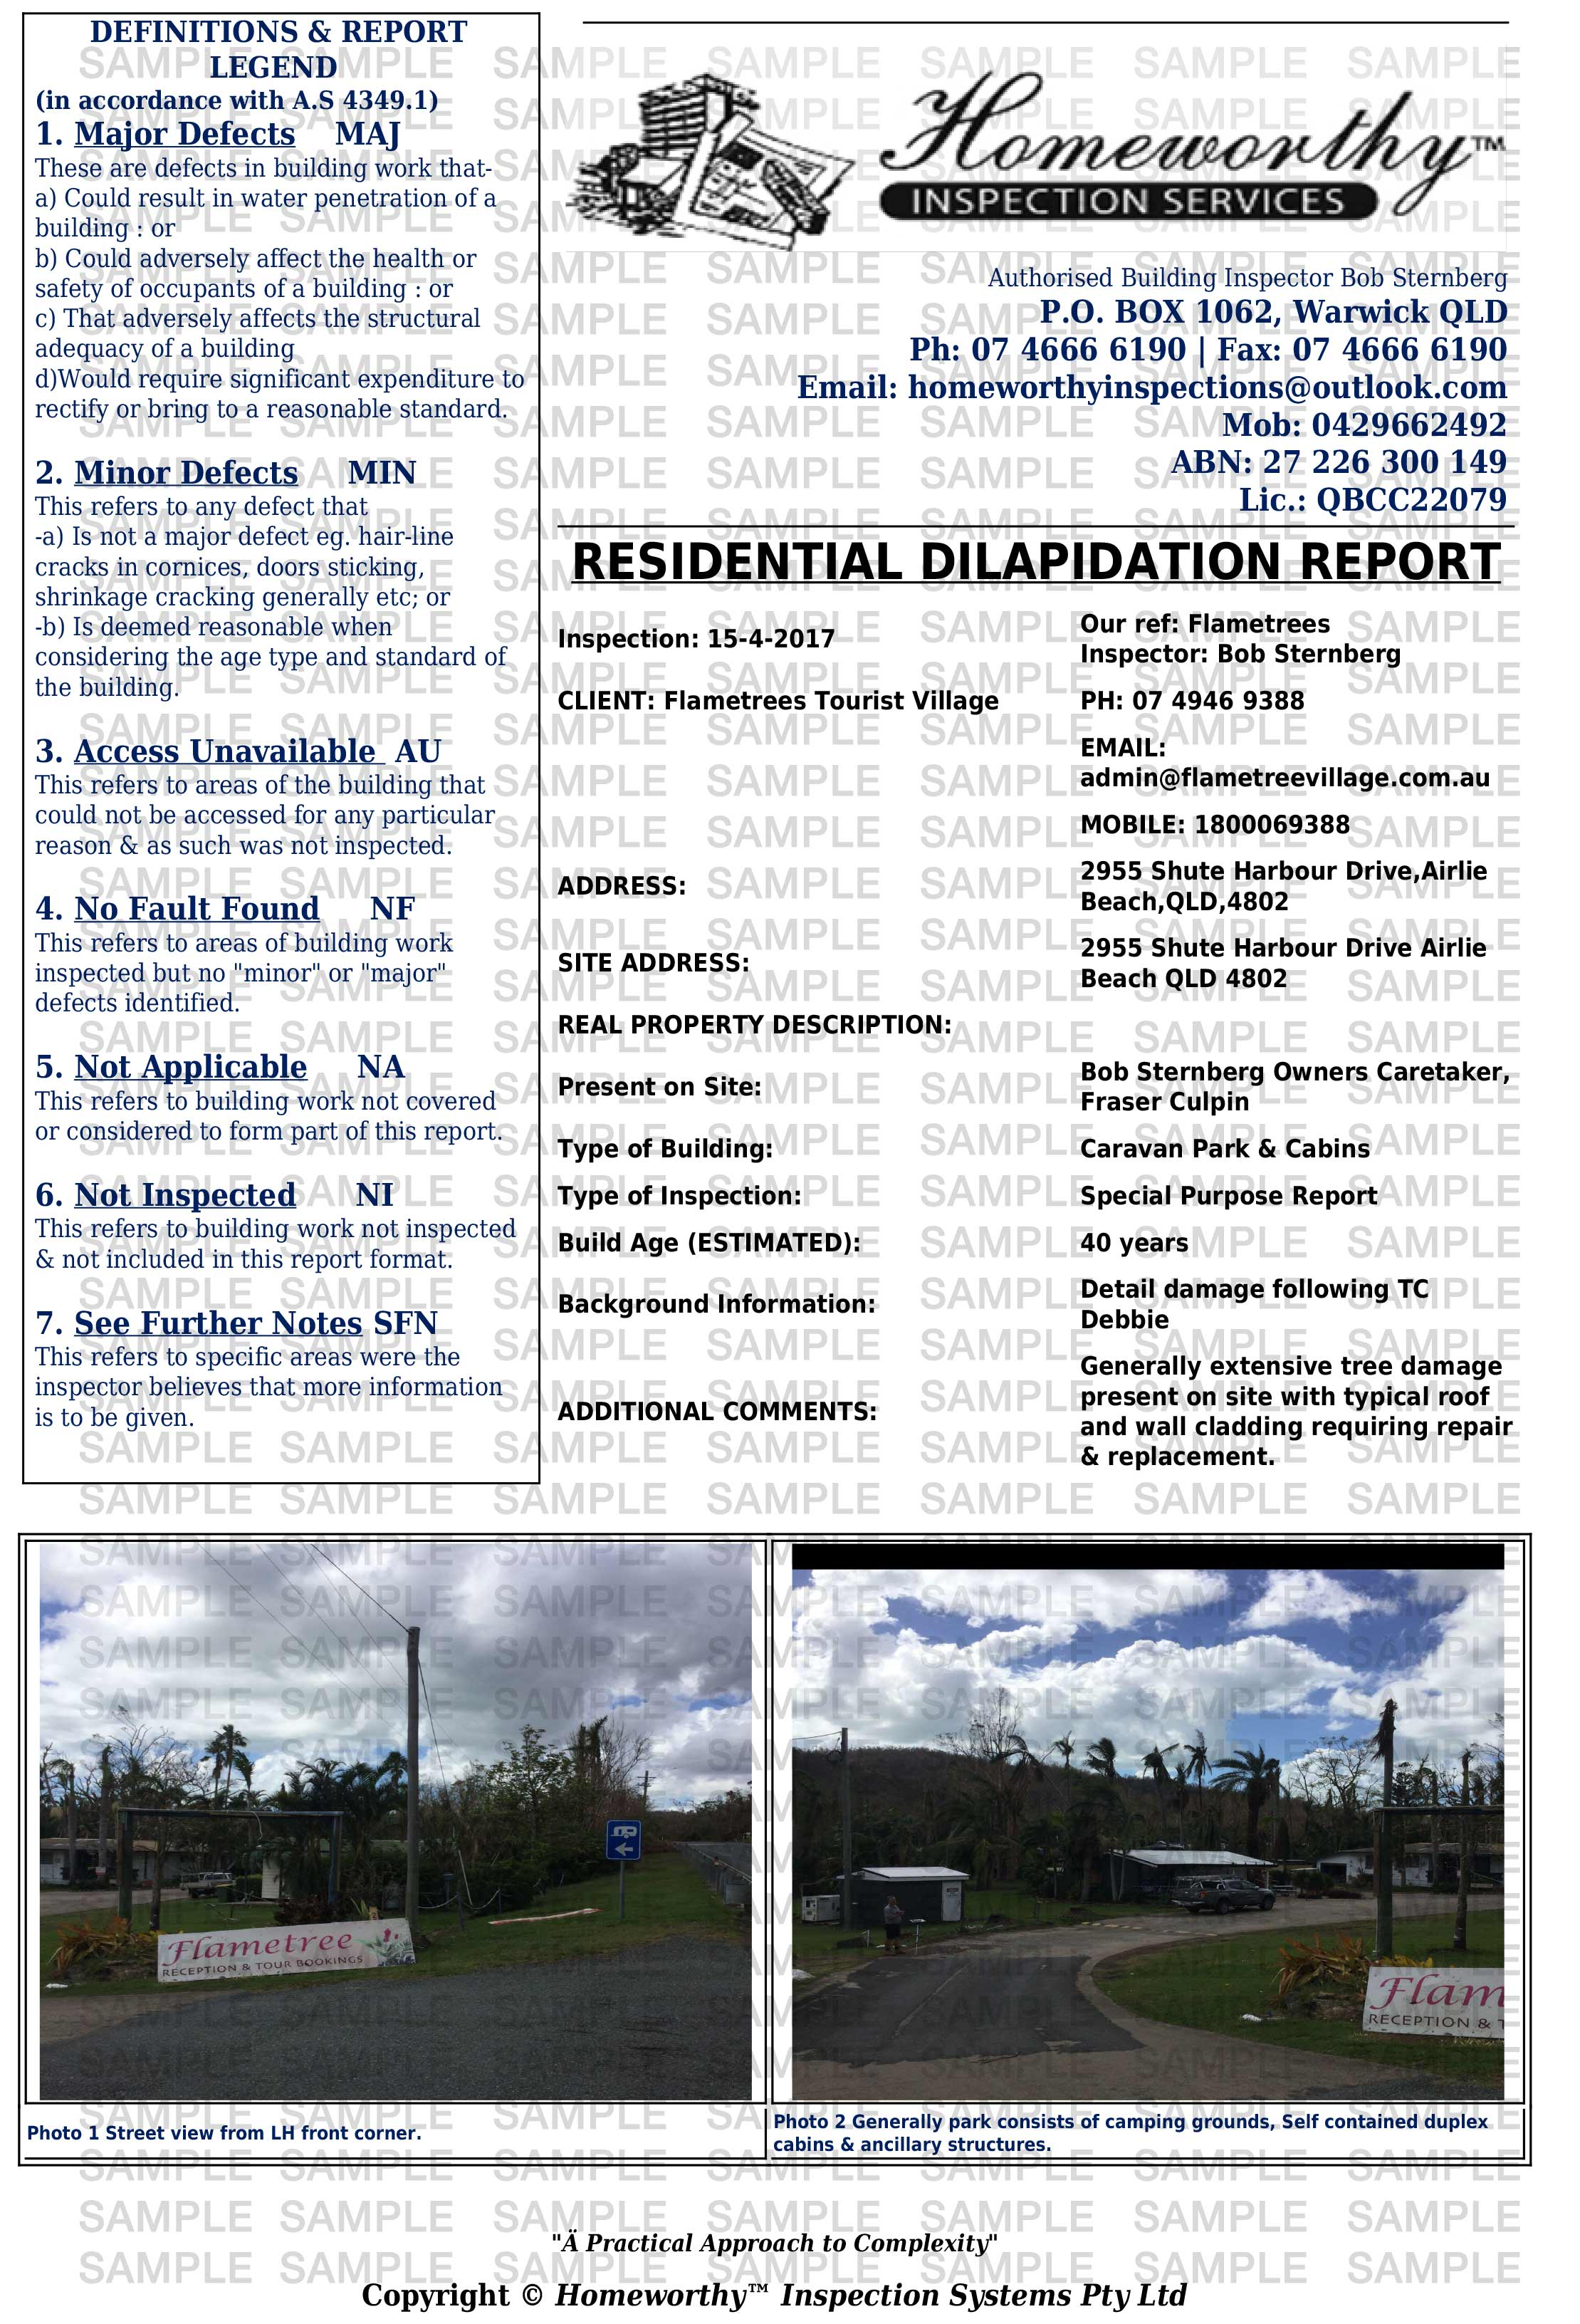 Residential Dilapidation Report